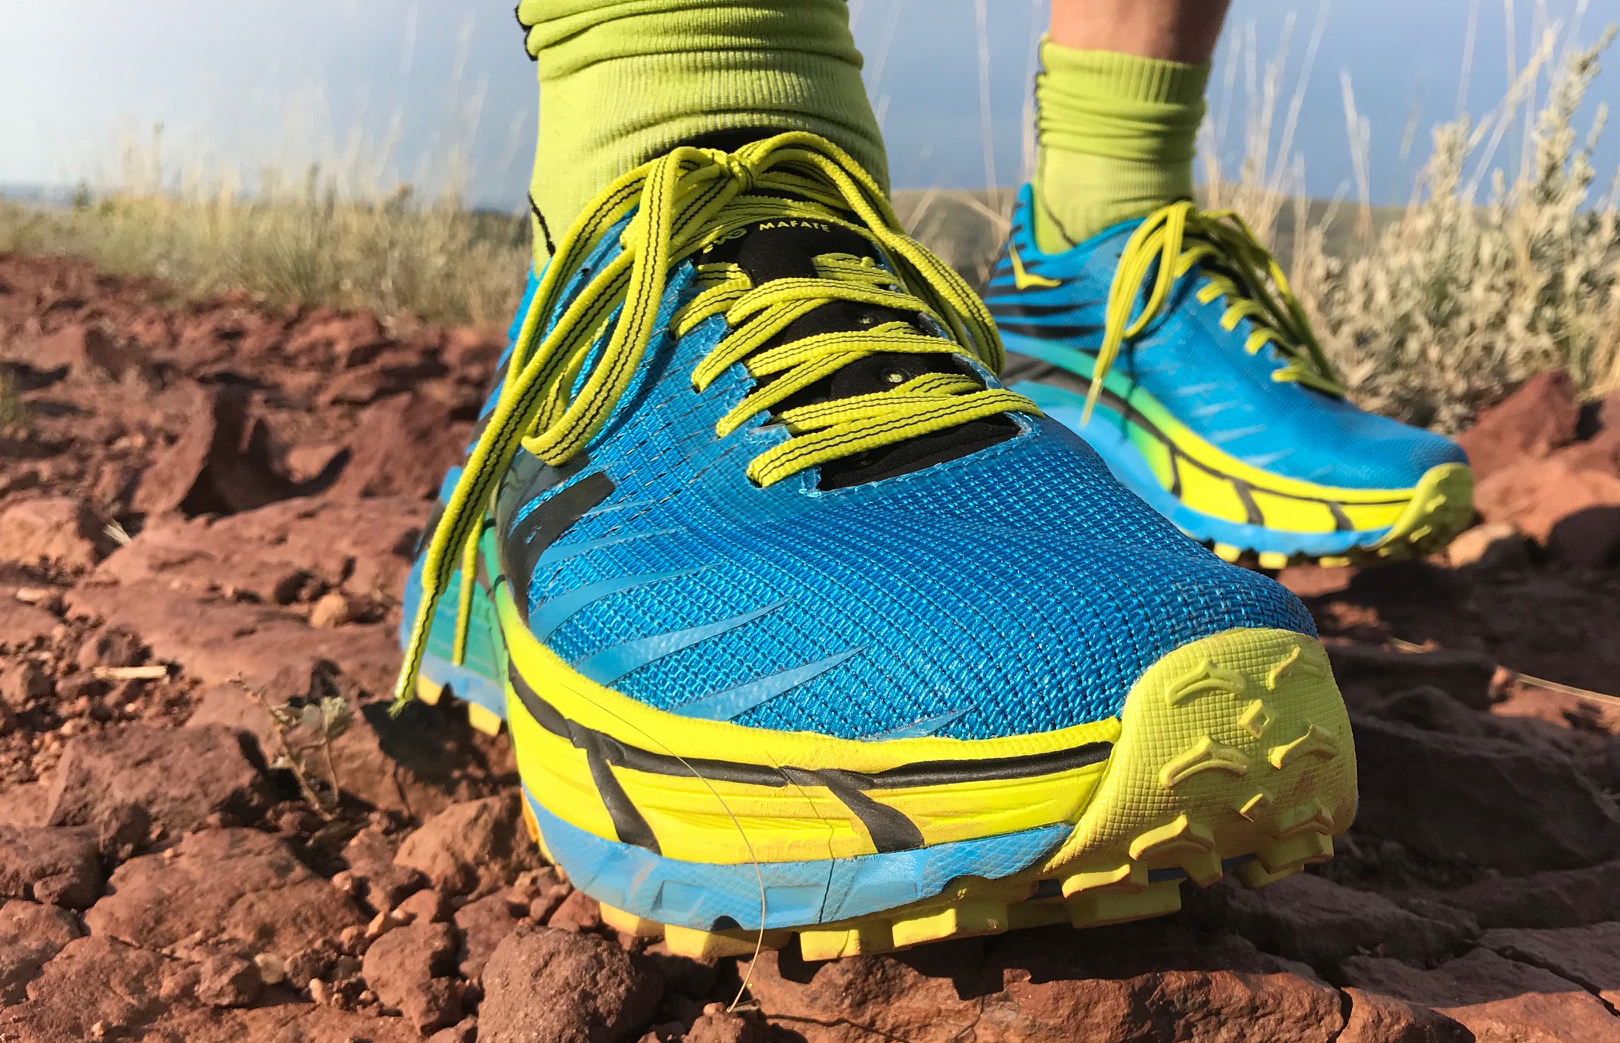 newest 5c51c 3651f Fast, Protective, Aggressive: HOKA ONE ONE EVO Mafate Review ...